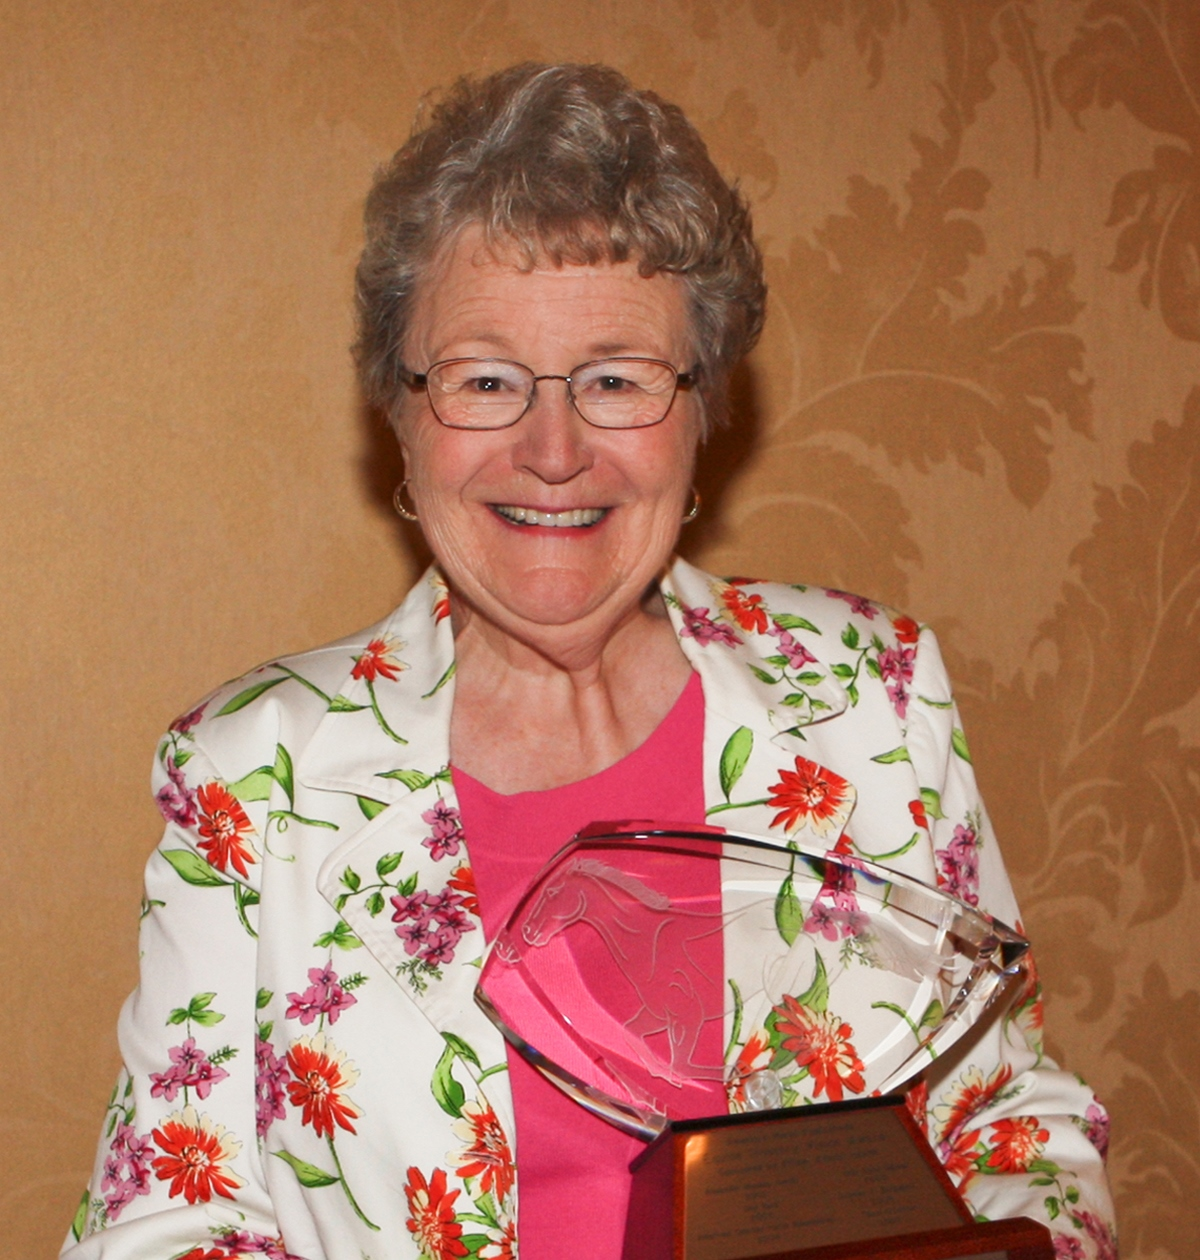 Founder of the American Riding Instructors Association Receives Eighth Annual Equine Industry Vision Award